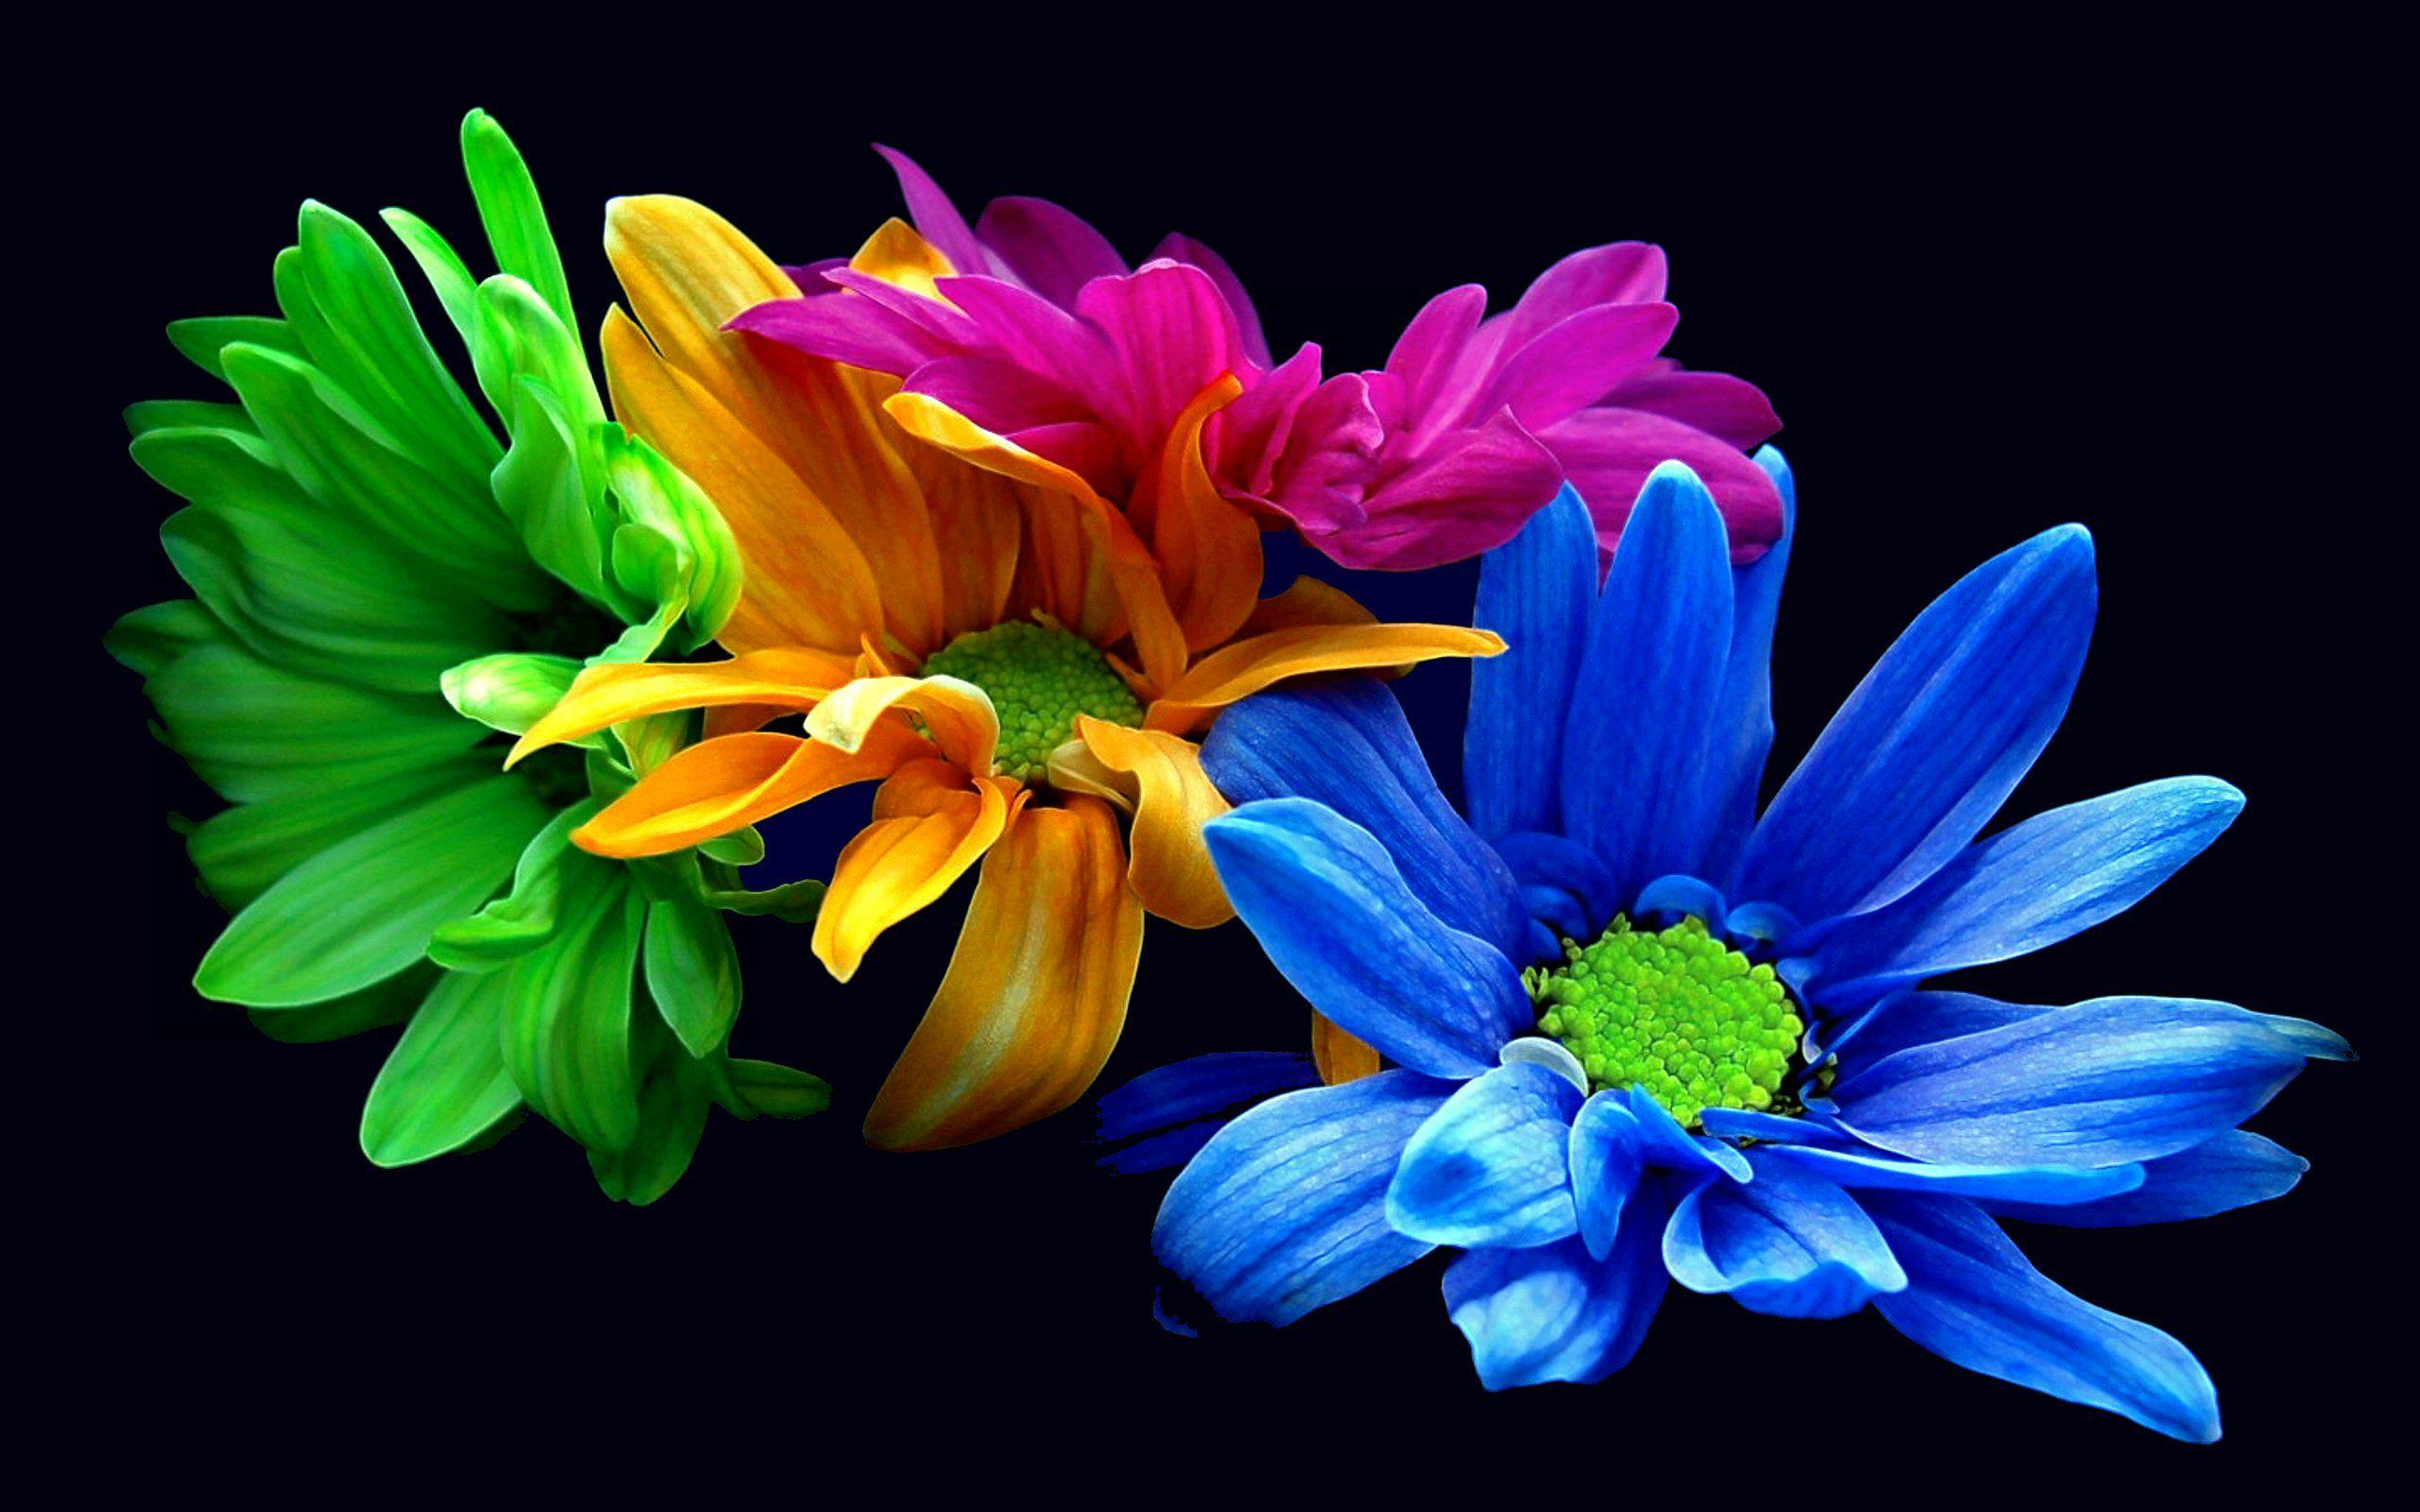 Free Colorful Flower Wallpaper Downloads: Colorful Flower HD Wallpapers